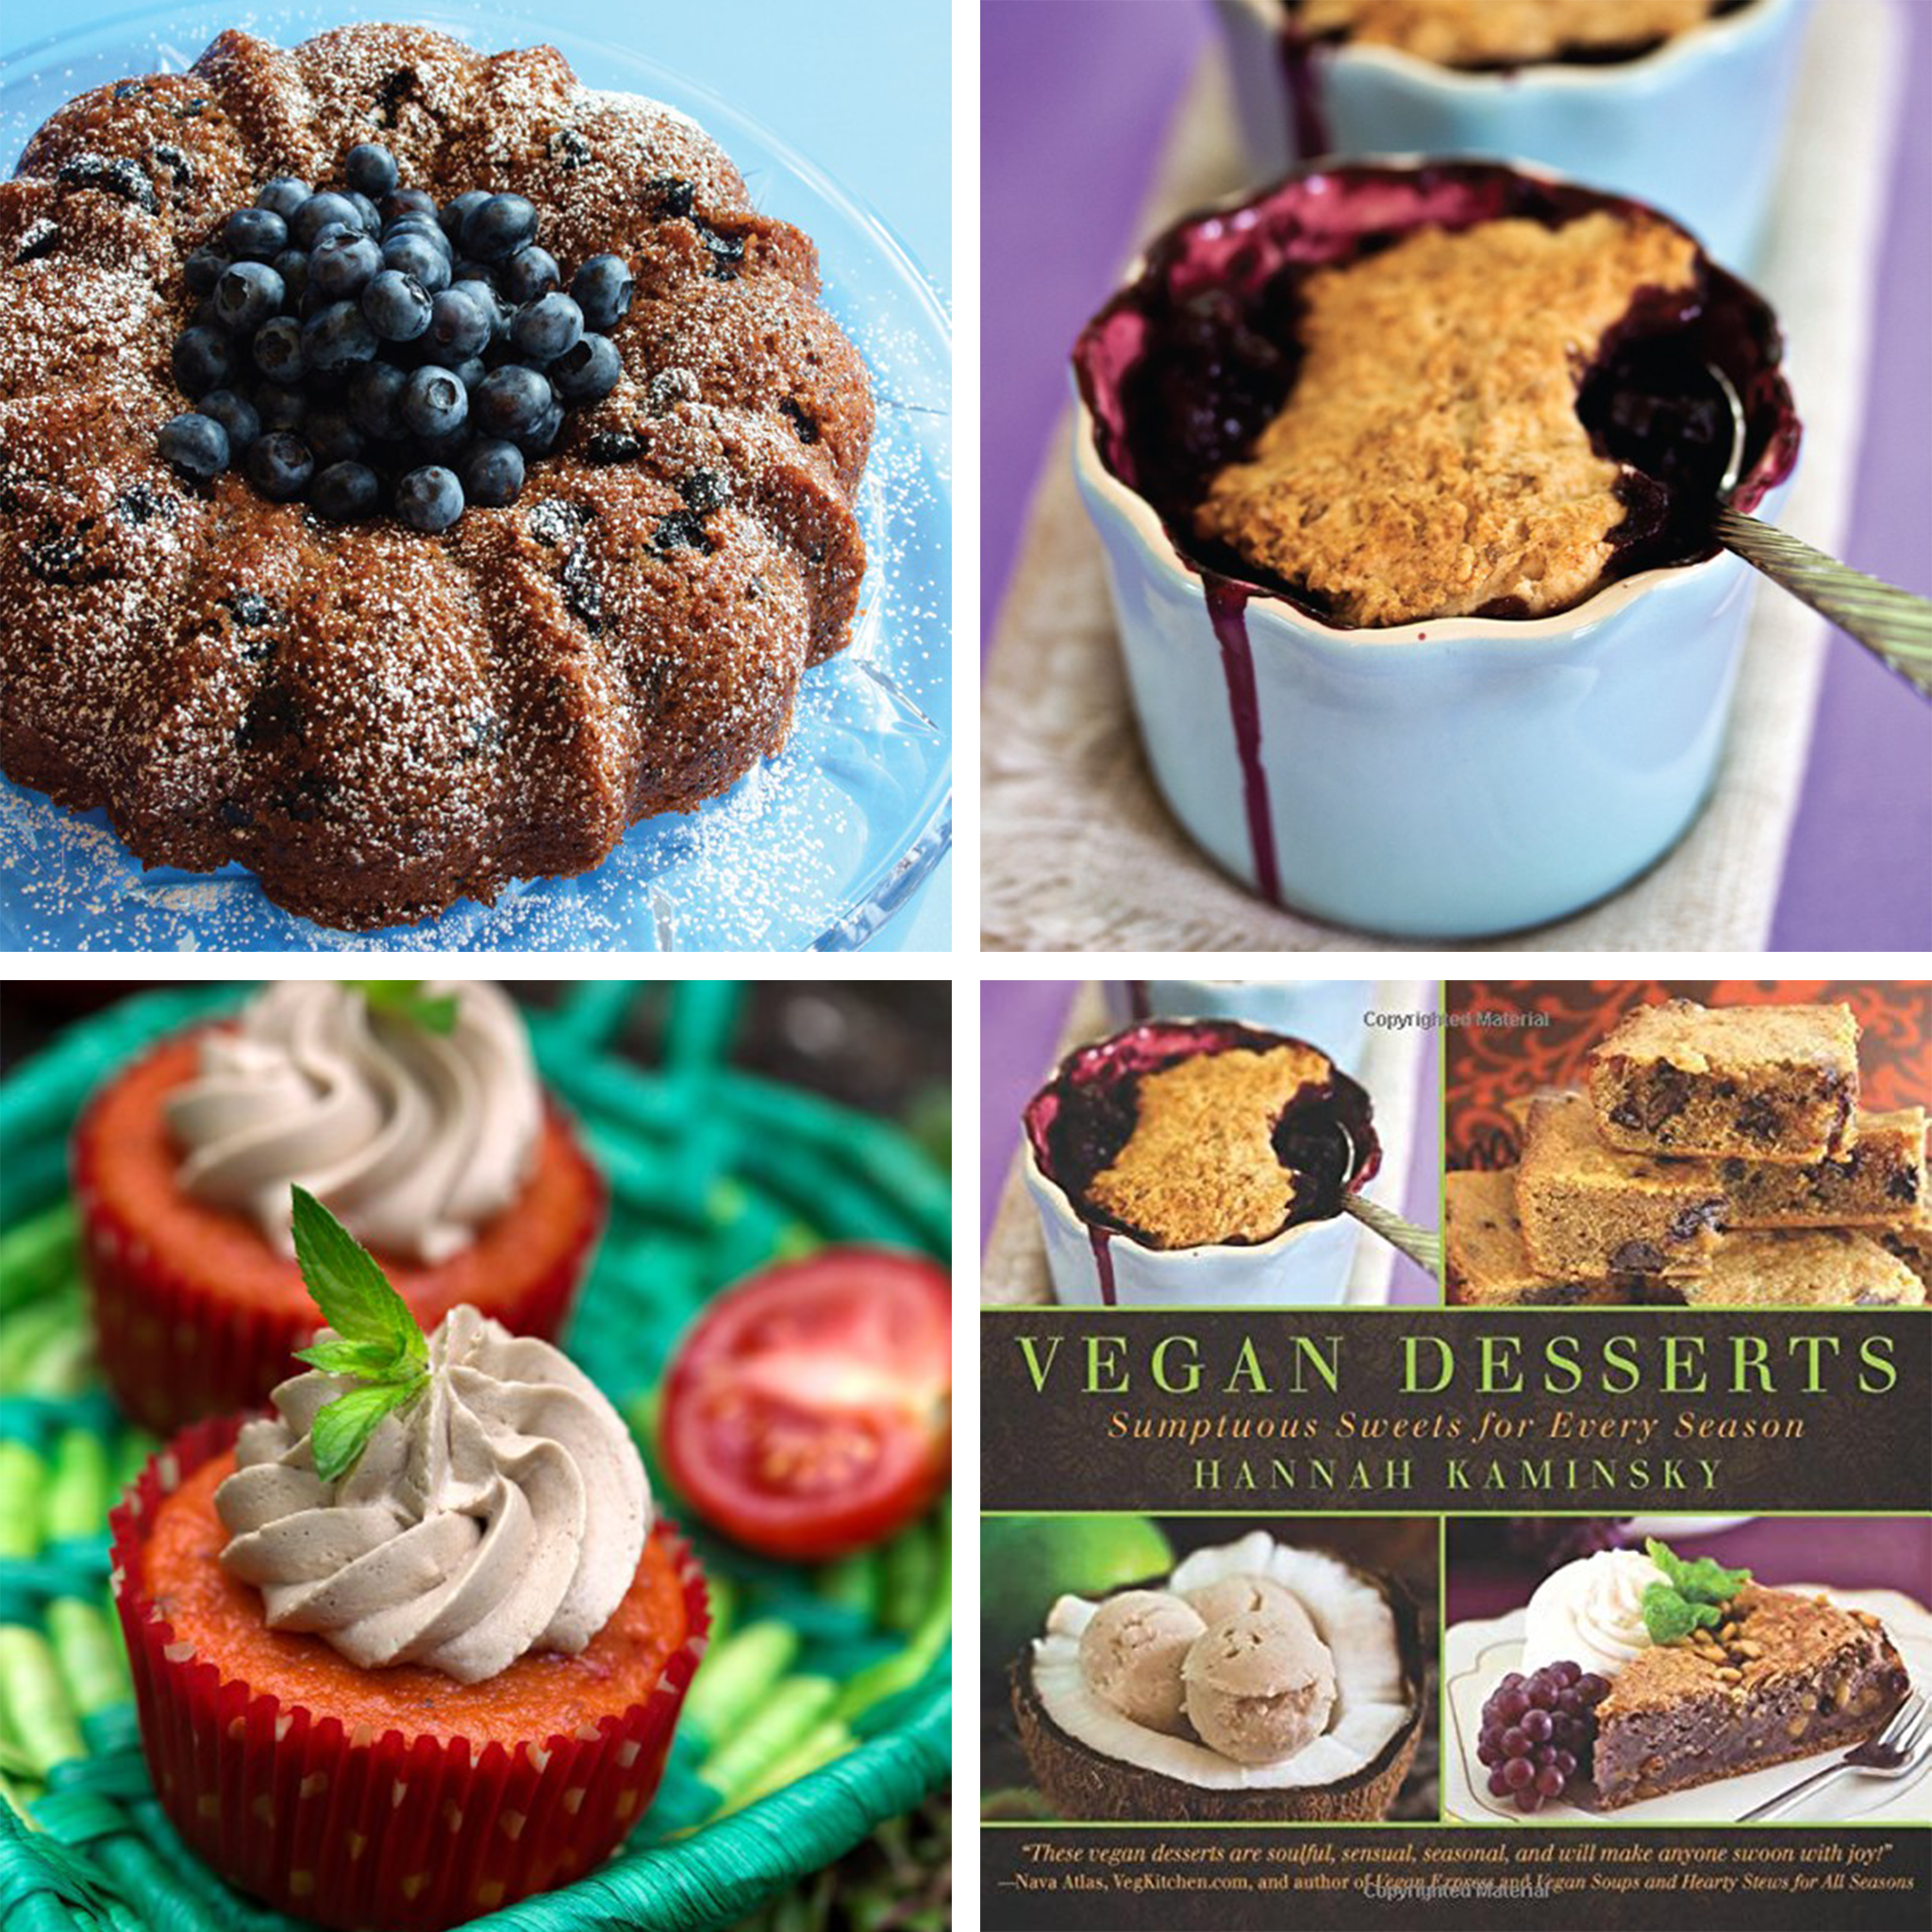 True Blue Bundt Cake ,  Tomato Cakes with Balsamic Frosting , and  Cherry-Berry Peanut Butter Cobbler  from  Vegan Desserts